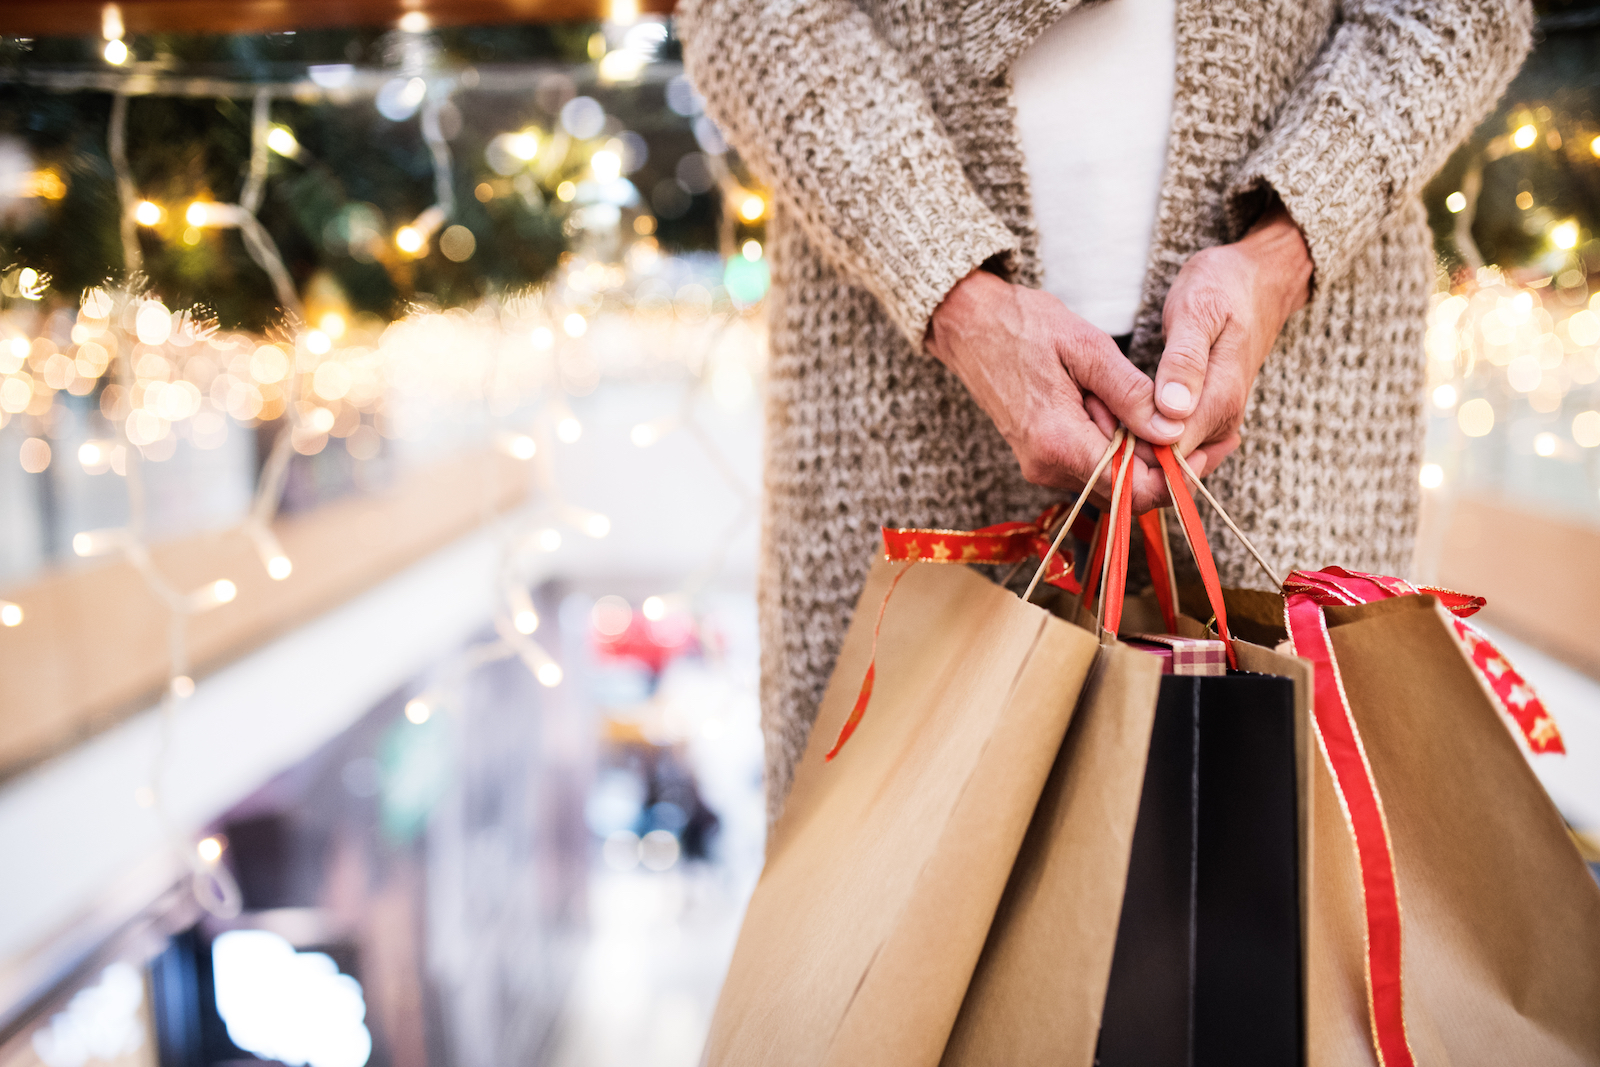 Black Friday shopper insights all retailers should know